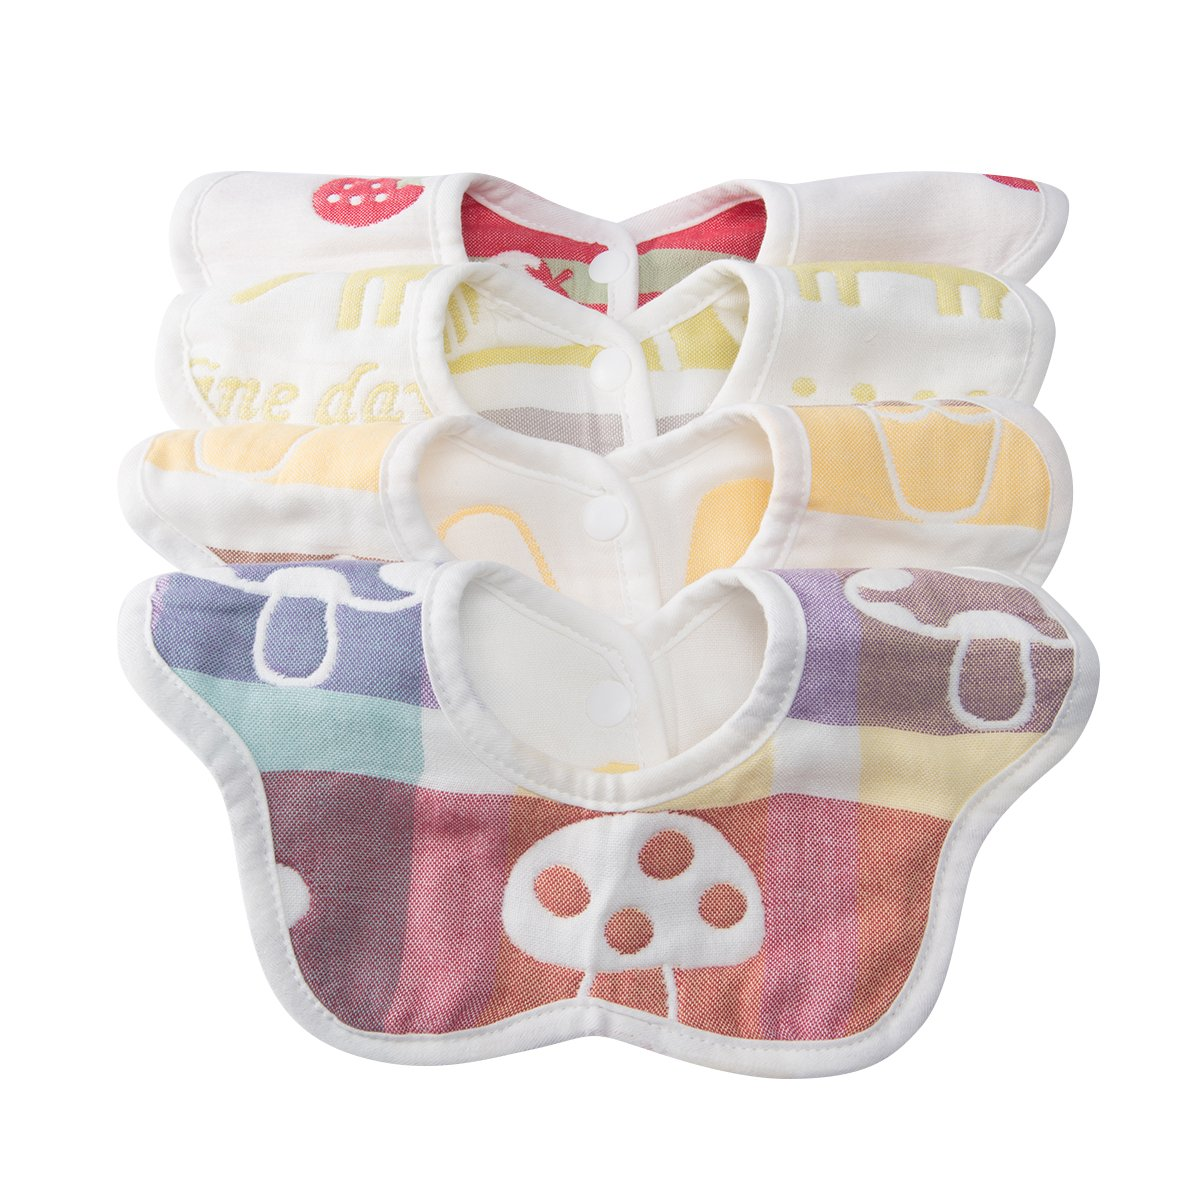 Cute Baby Drool Bibs 4 Pack - Soft Breathable & Comfortable 100% Organic Cotton bibs - Bandana Drooling Scarf for Feeding Babies & Toddlers From 3 Month - 3 Years Kids | Reversible & Rotational Design bib(colorful nature love) Yesay